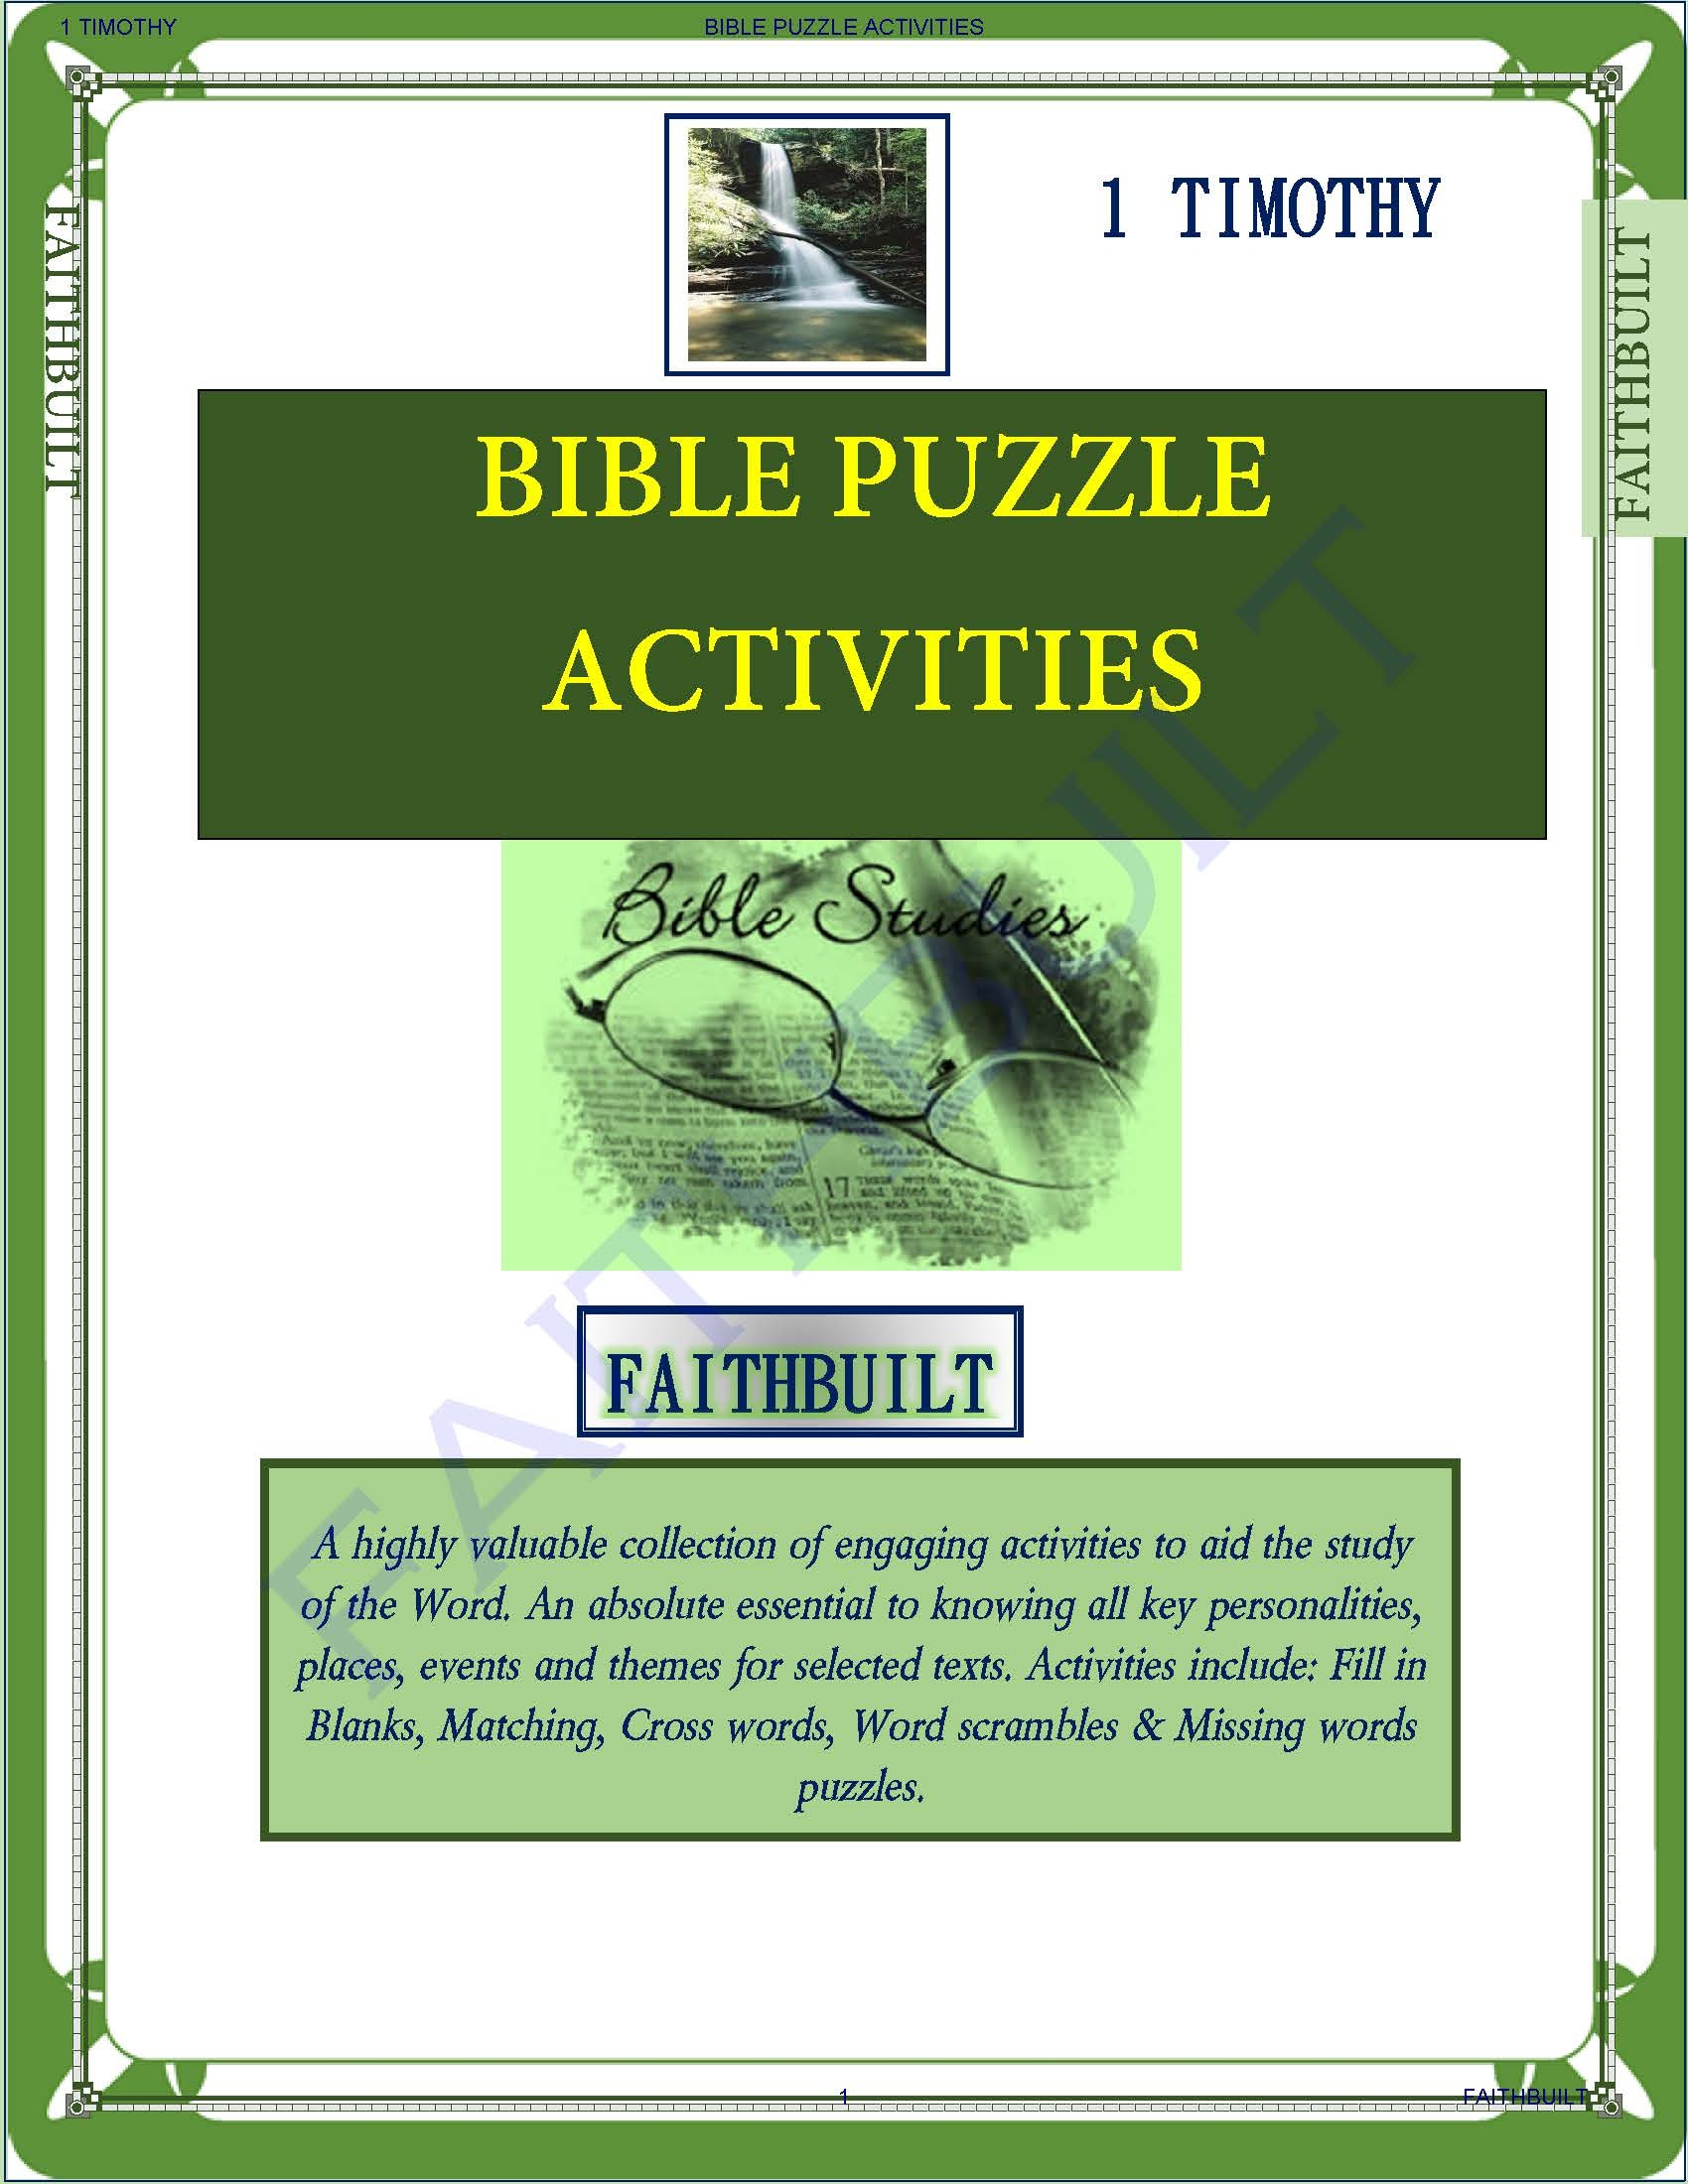 I TIMOTHY : BIBLE PUZZLES & ACTIVITIES